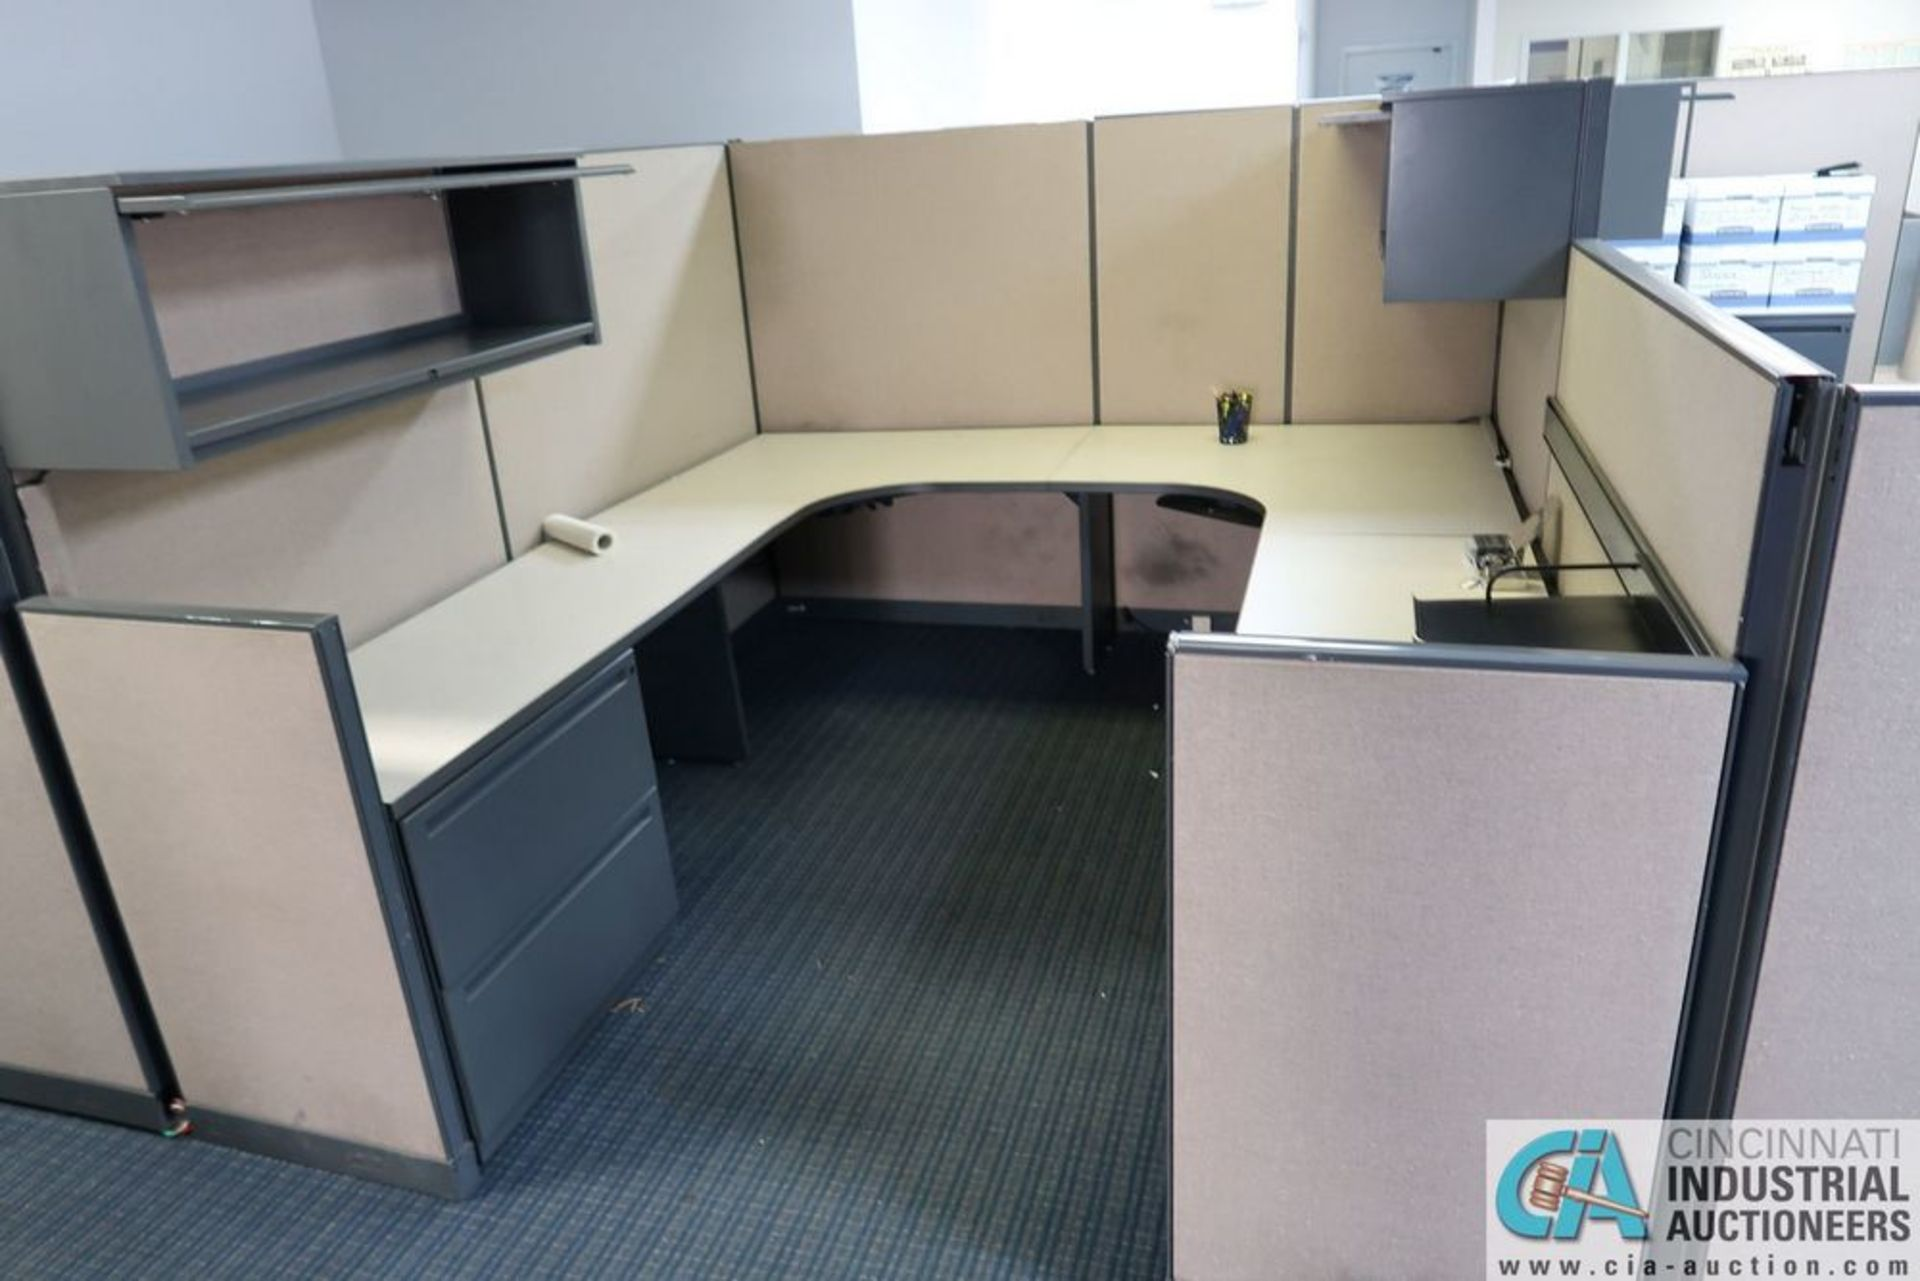 "(LOT) OFFICE CUBICLES, (2) 72"" X 72"", (2) 100"" X 92"", (2) 112"" X 96"", (1) 216"" X 72"" - Image 9 of 10"